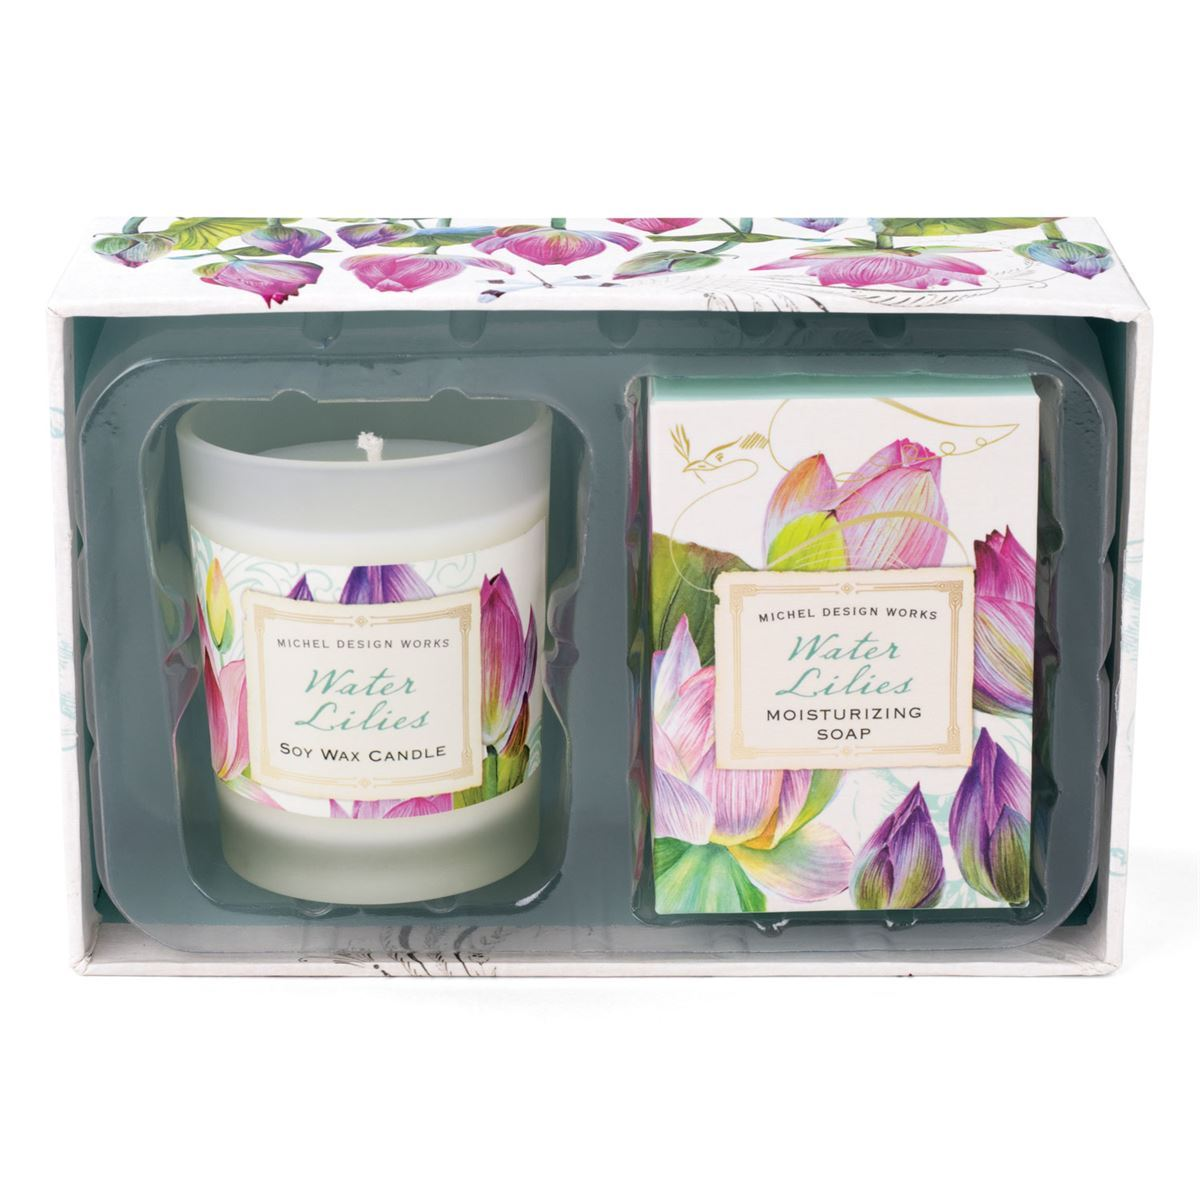 Water Lilies Candle & Soap Gift Set - Gift Sets - Michel Design Works - Naiise